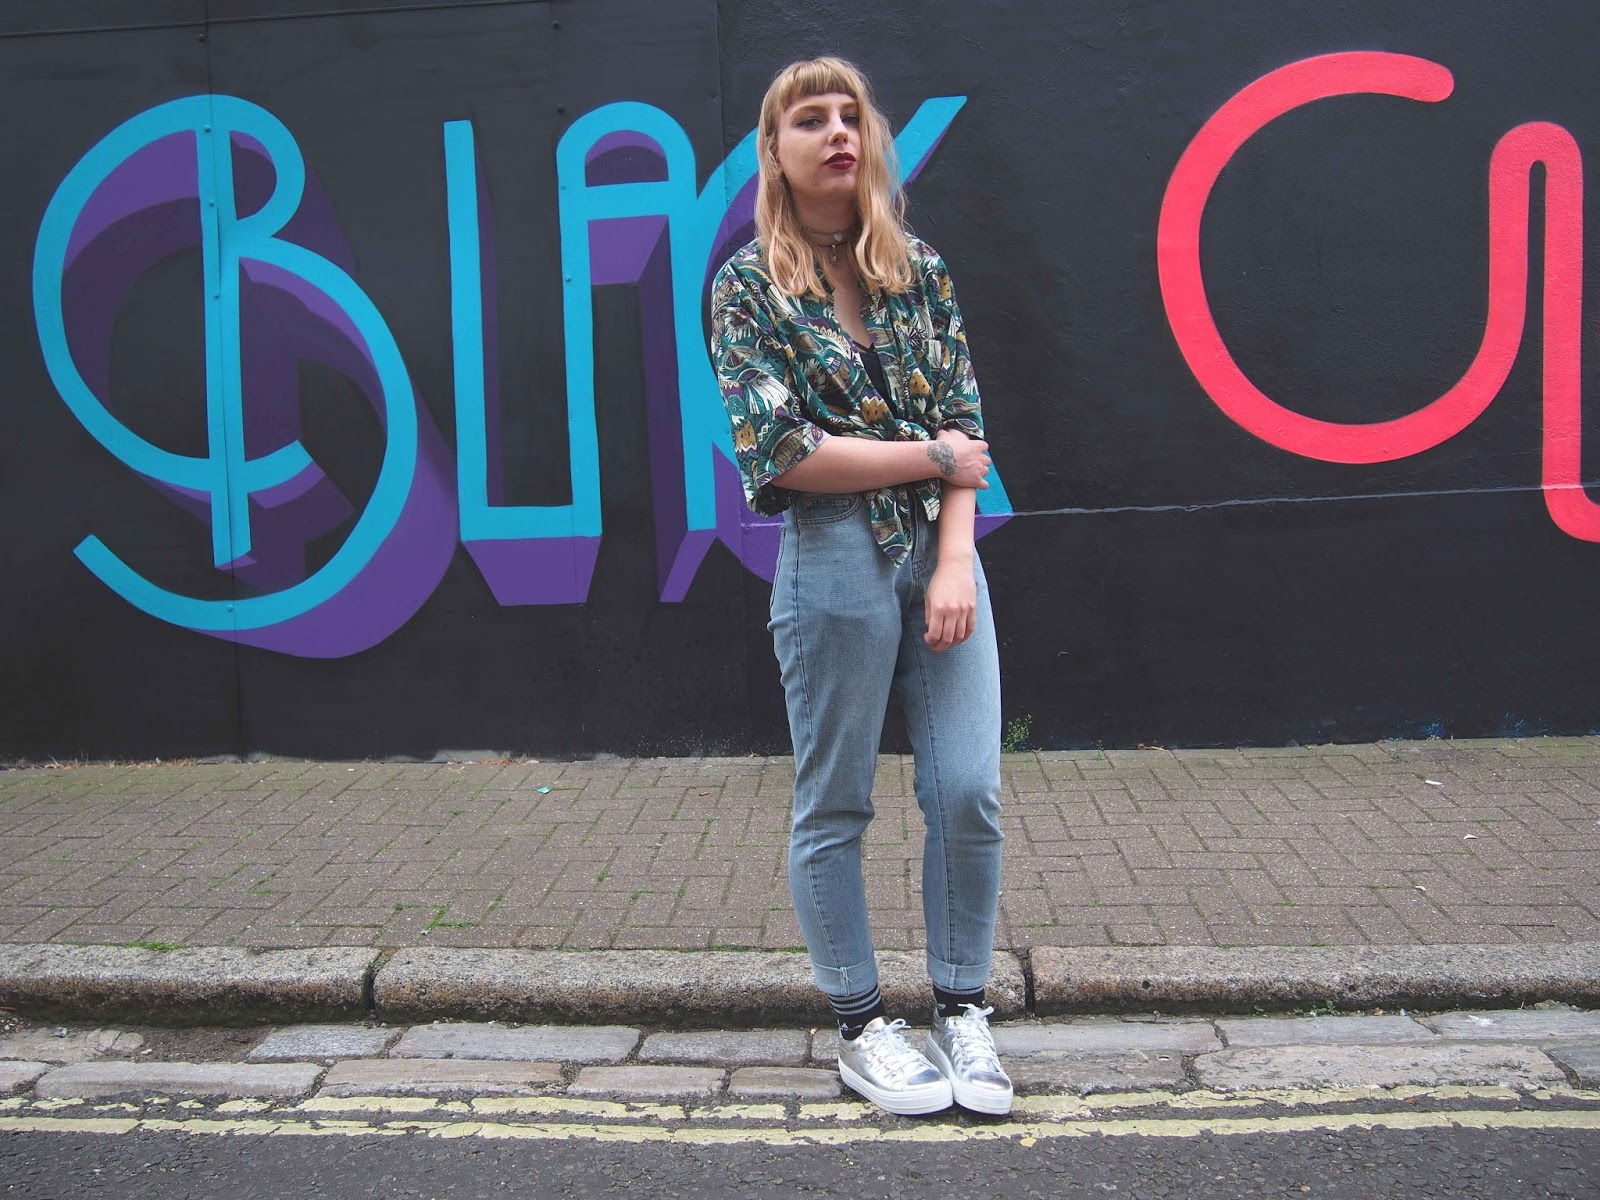 vintage oversized shirt, girlfriend jeans, cheap monday jeans, harness bra, metallic flatform platform shoes, adidas socks, alternative unique grunge spring summer style outfit inspiration 1